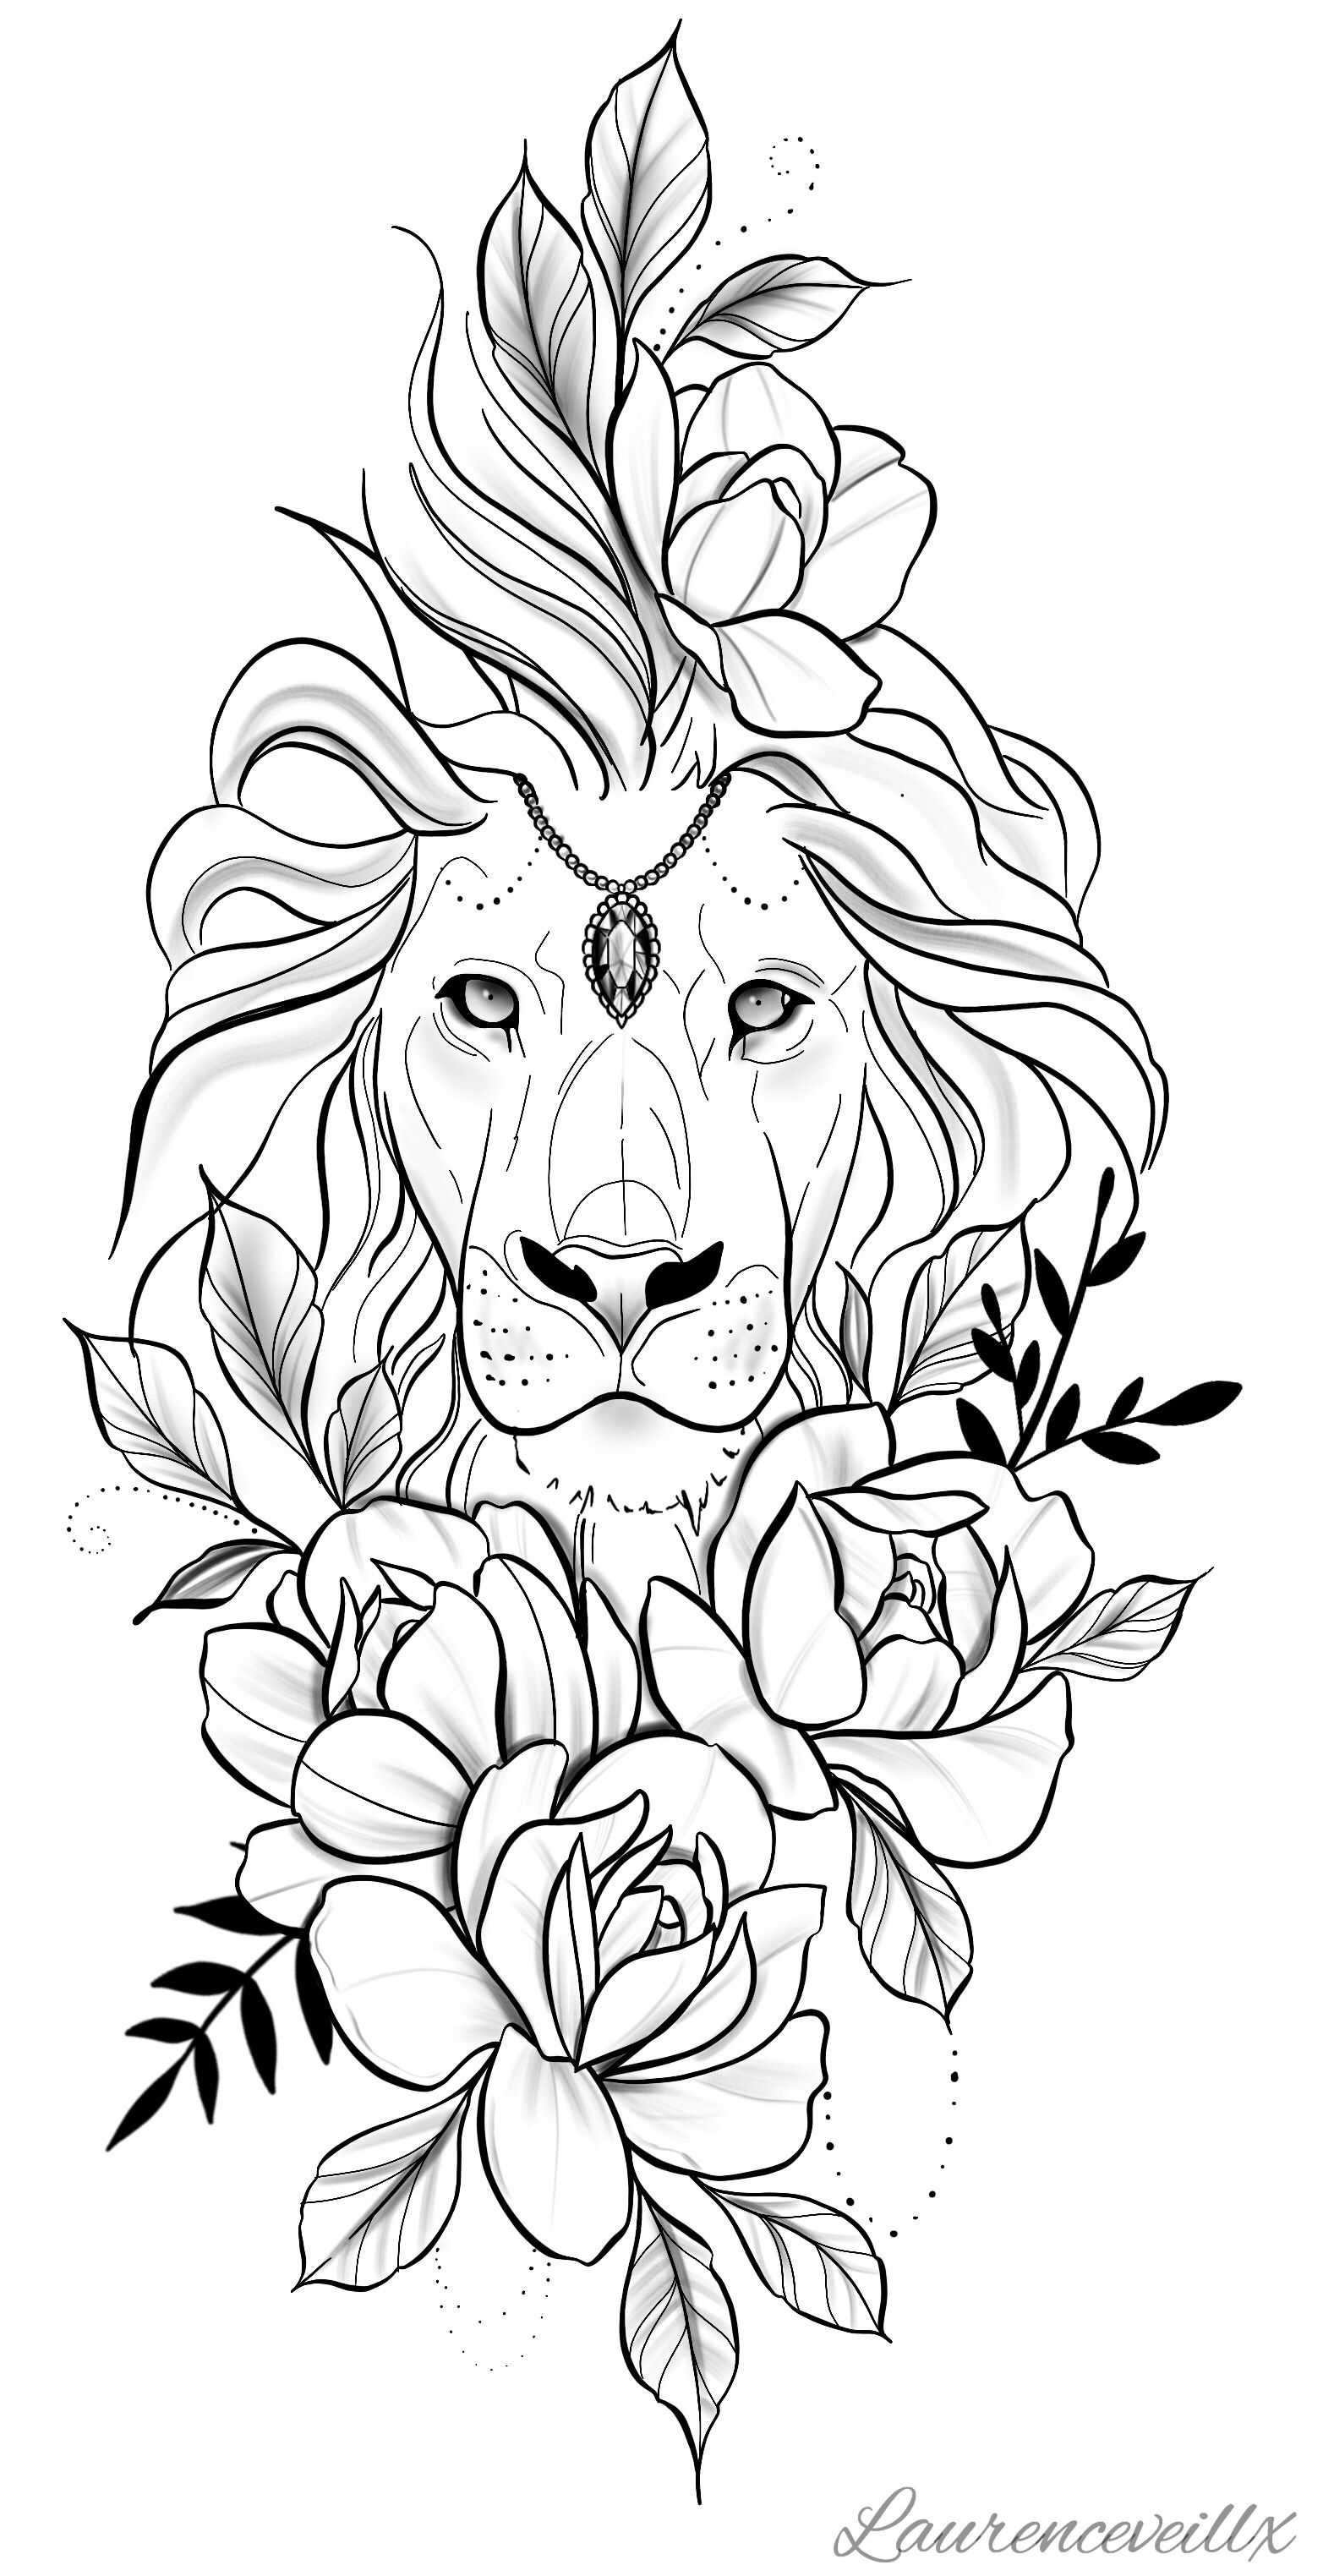 Lion flower tattoo @laurenceveillx #tattoodrawings